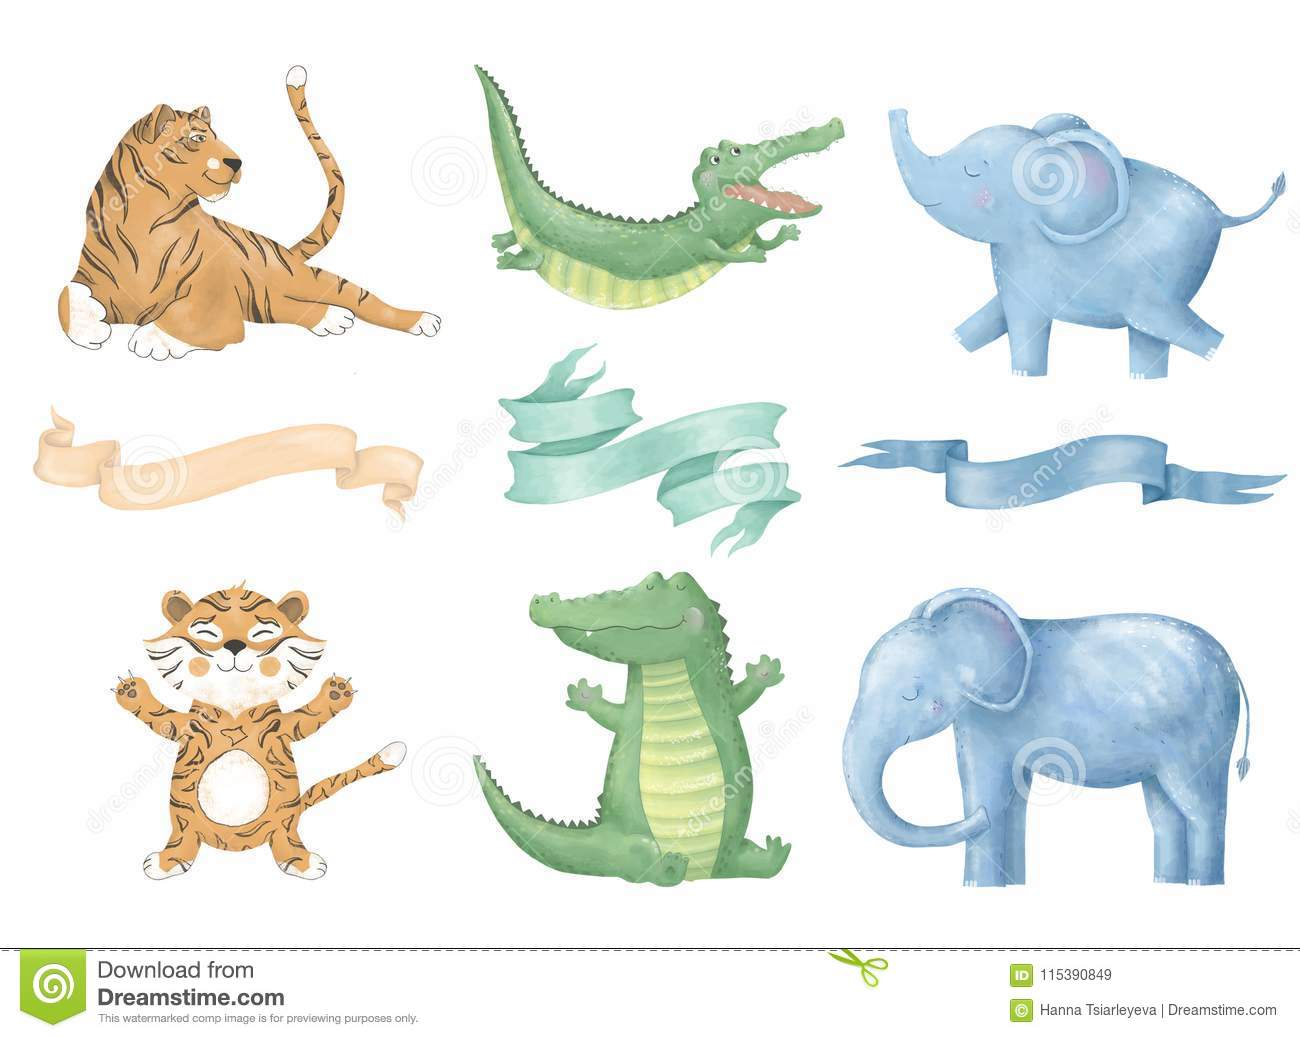 Crocodile tiger elephant digital clip art cat with ribbons cute animal and flowers for card, posters, on white